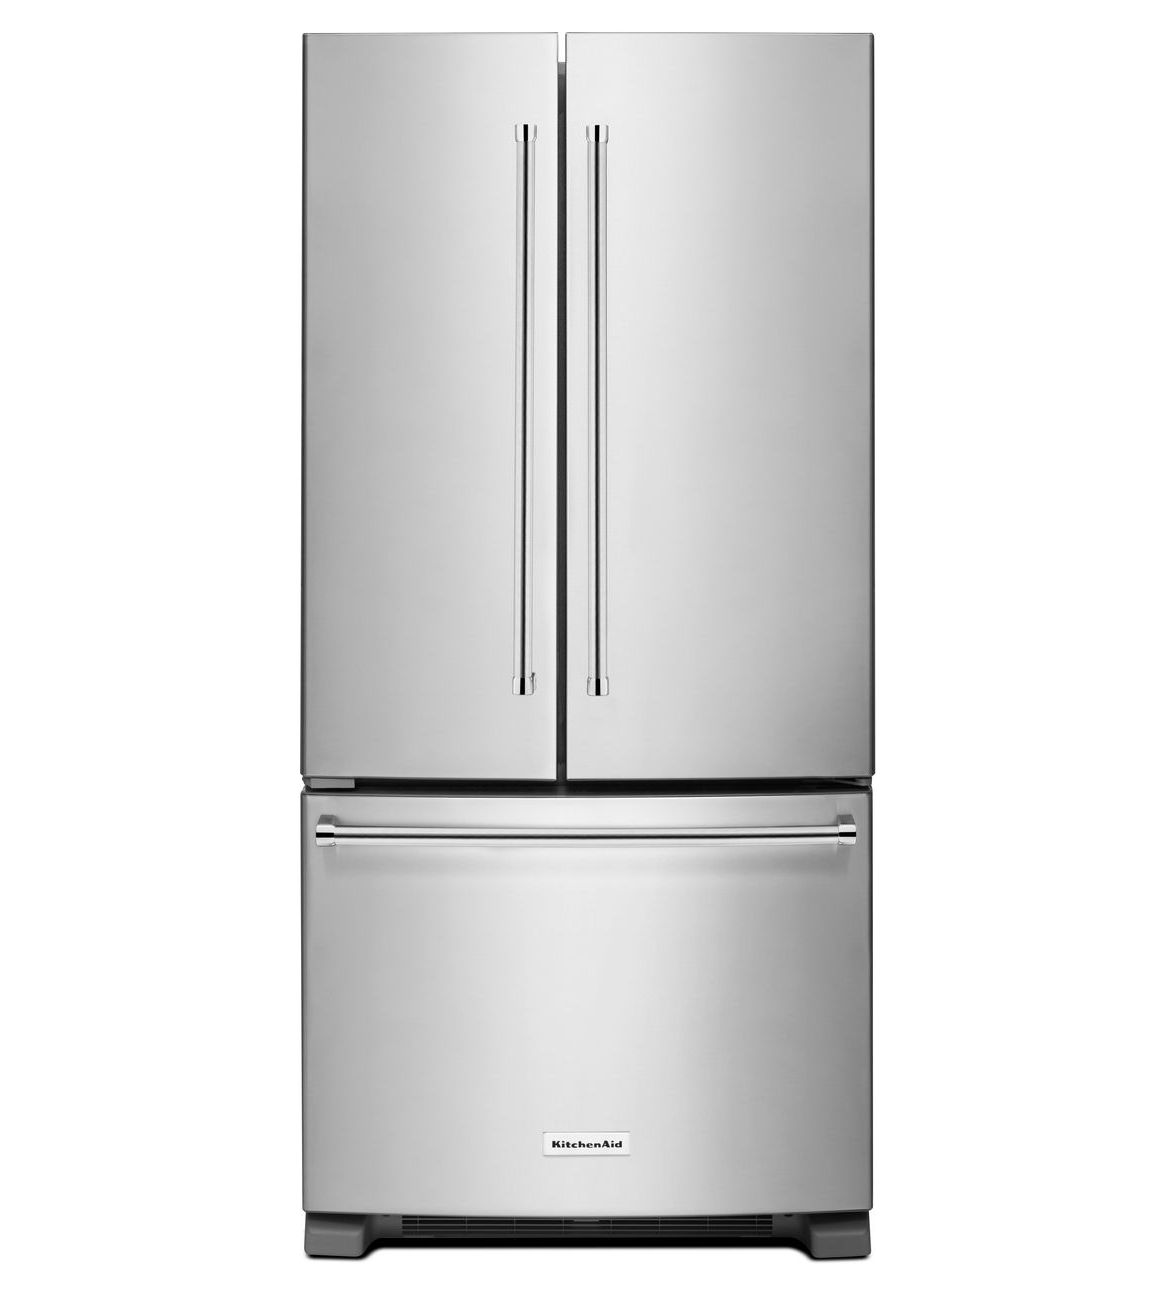 Kitchenaid 22 1 Cu Ft French Door Refrigerator With Ice: KITCHENAID 33″ 22 CU. FT. STANDARD DEPTH FRENCH DOOR REFRIGERATOR WITH INTERIOR